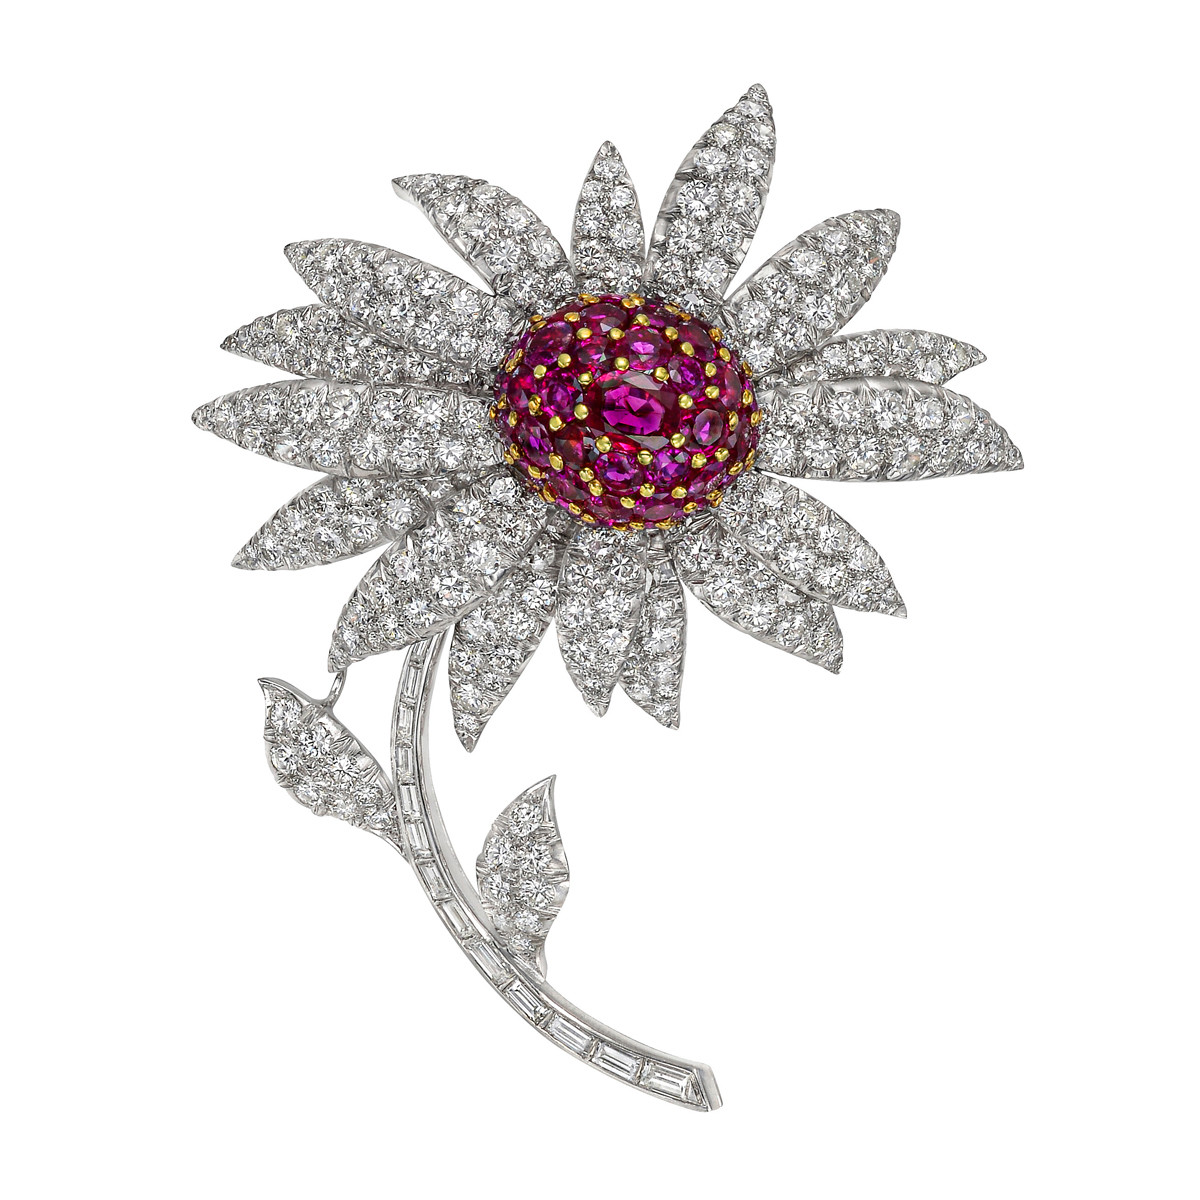 Platinum, Ruby & Diamond Flower Brooch